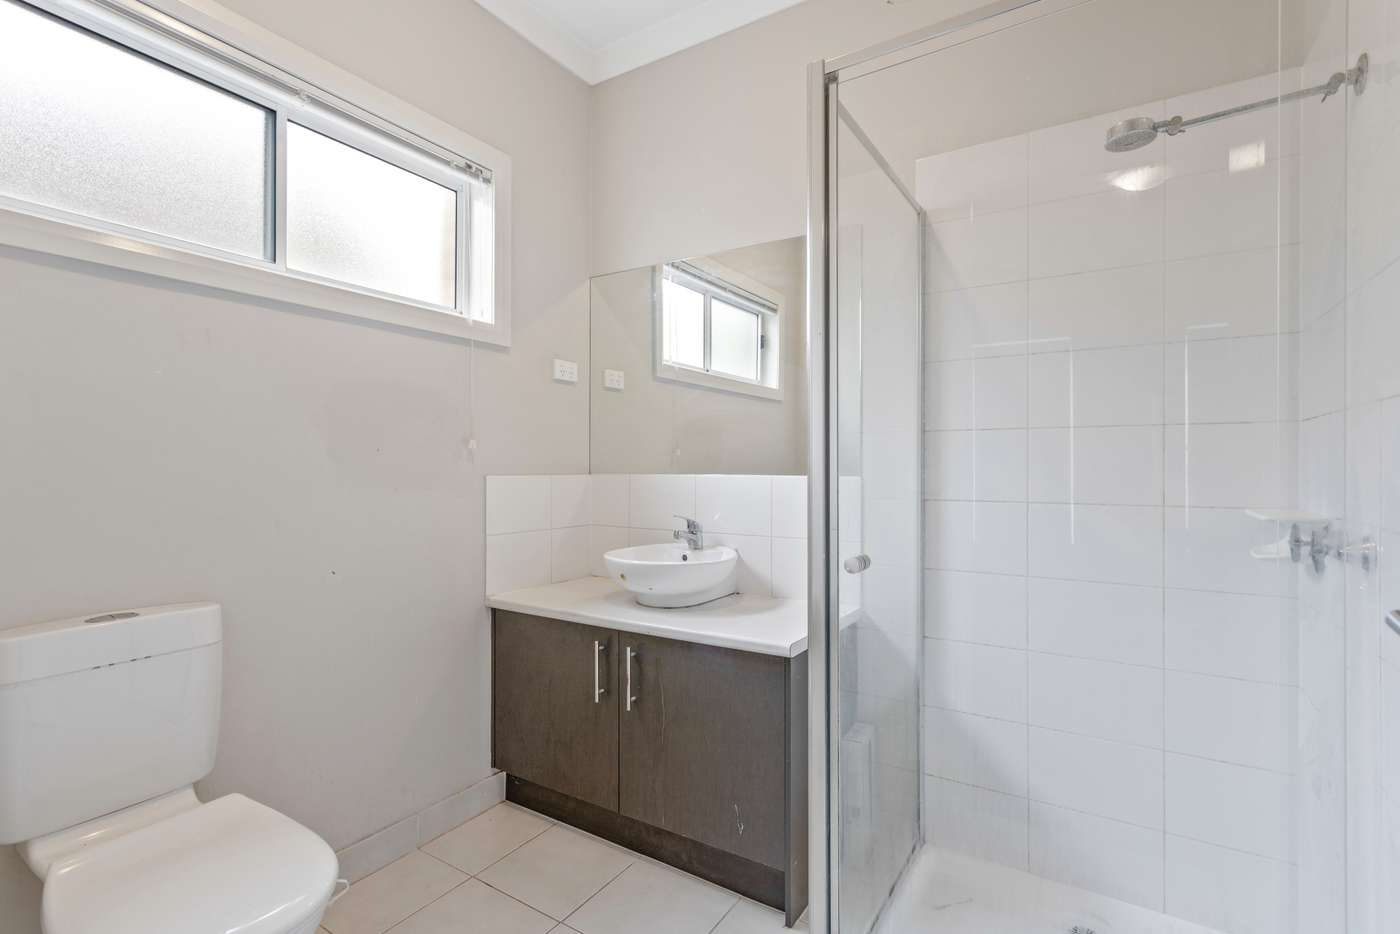 Fifth view of Homely house listing, 15 Victoria Street, Truganina VIC 3029